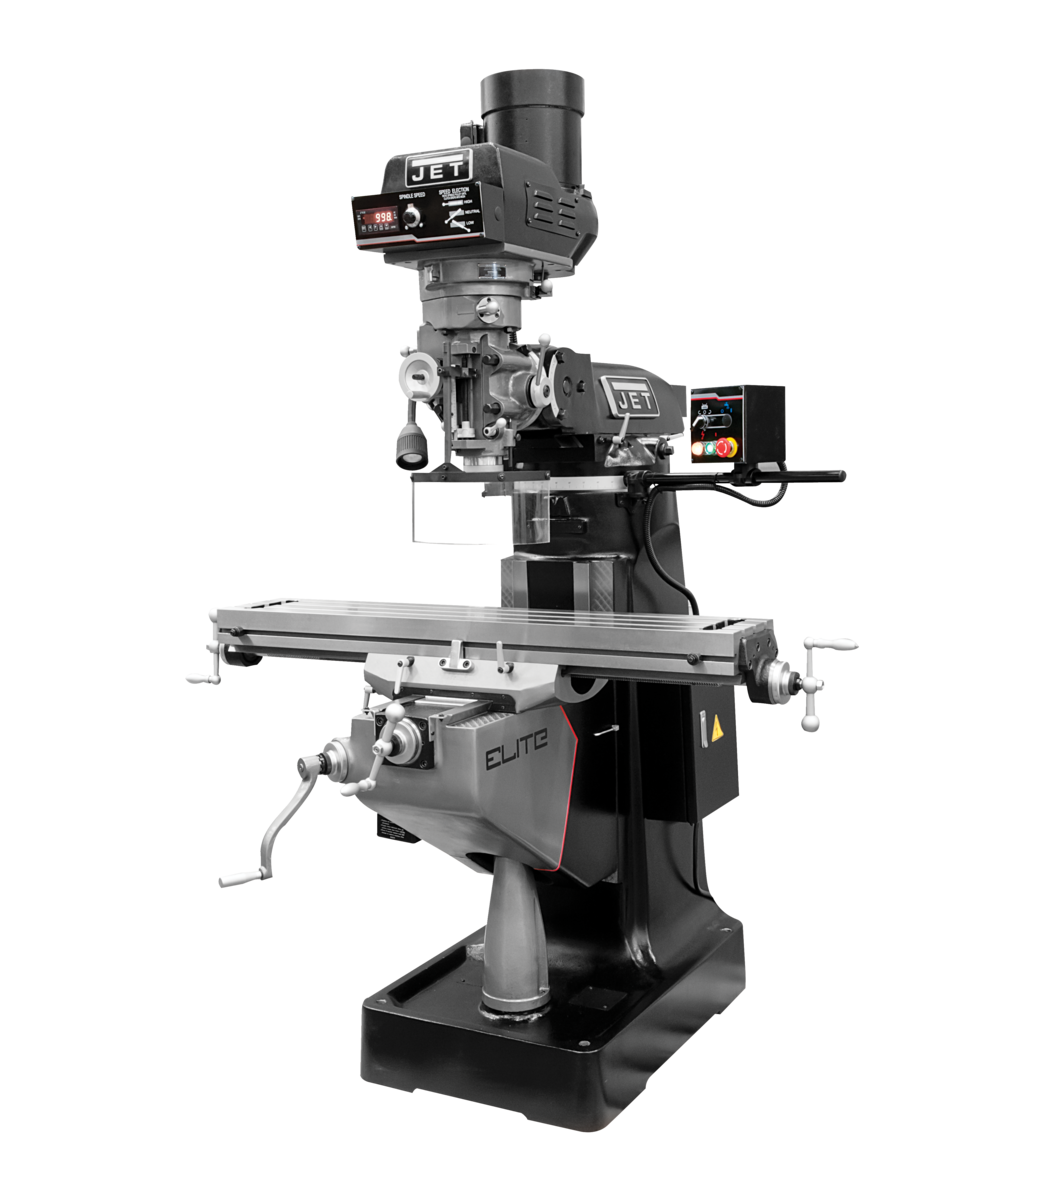 EVS-949 Mill with 3-Axis ACU-RITE 303 (Knee) DRO and Servo X, Y-Axis Powerfeeds